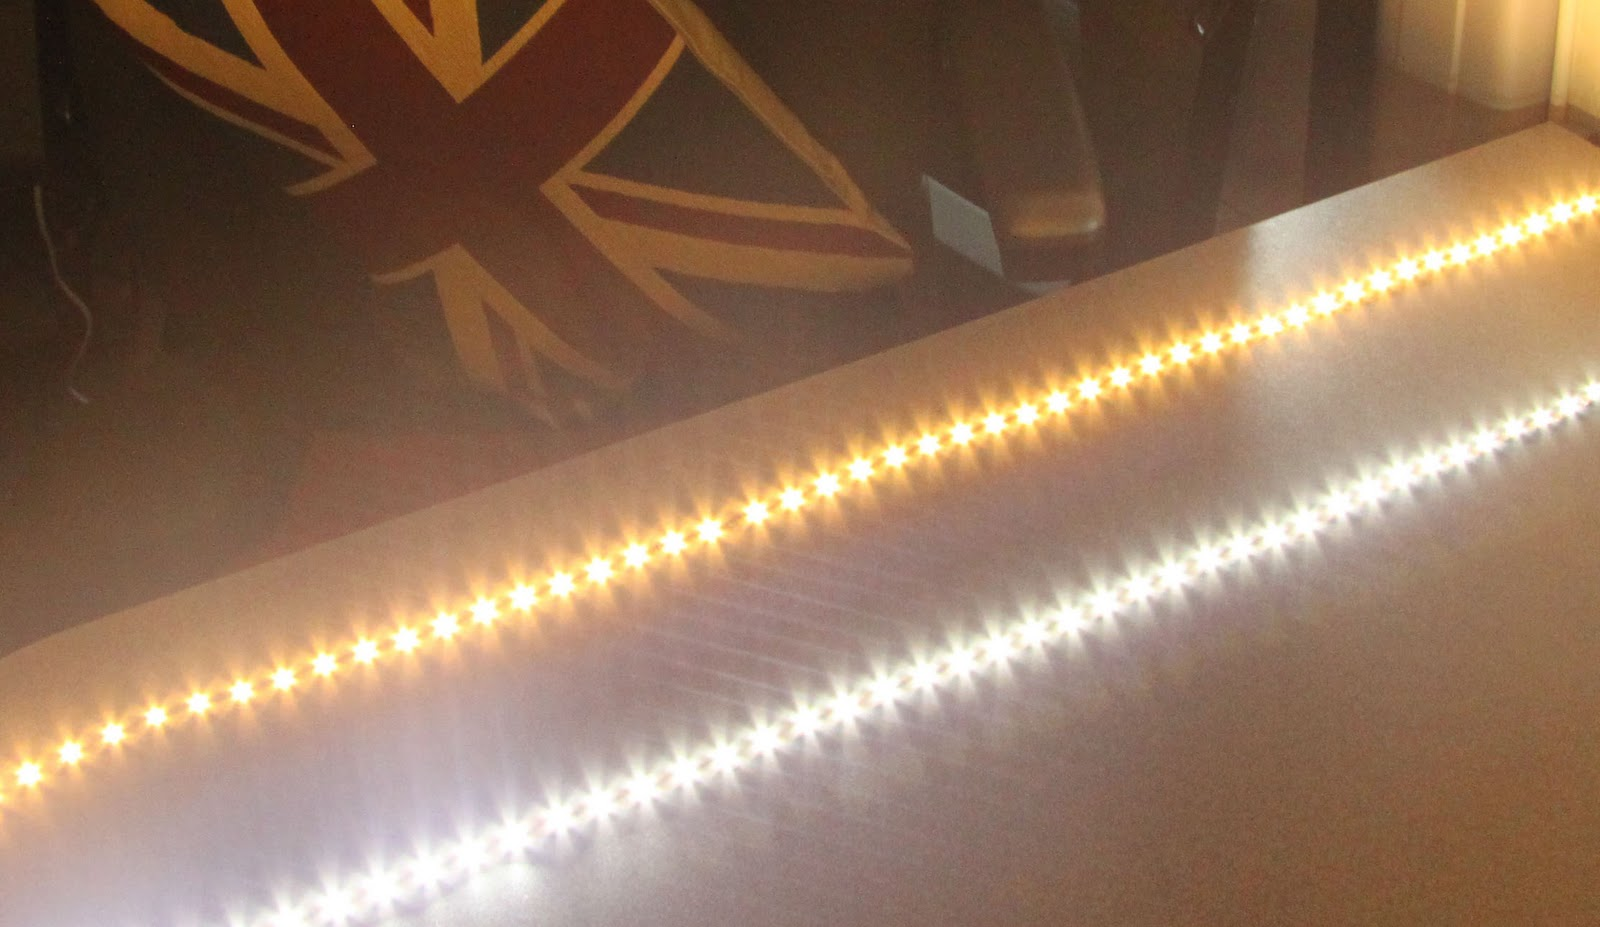 Motorhome adhesive led lighting strips europe by camper the picture to the left shows two different led strips its actually pretty hard to photograph them they are so bright the strip on the left is a warm aloadofball